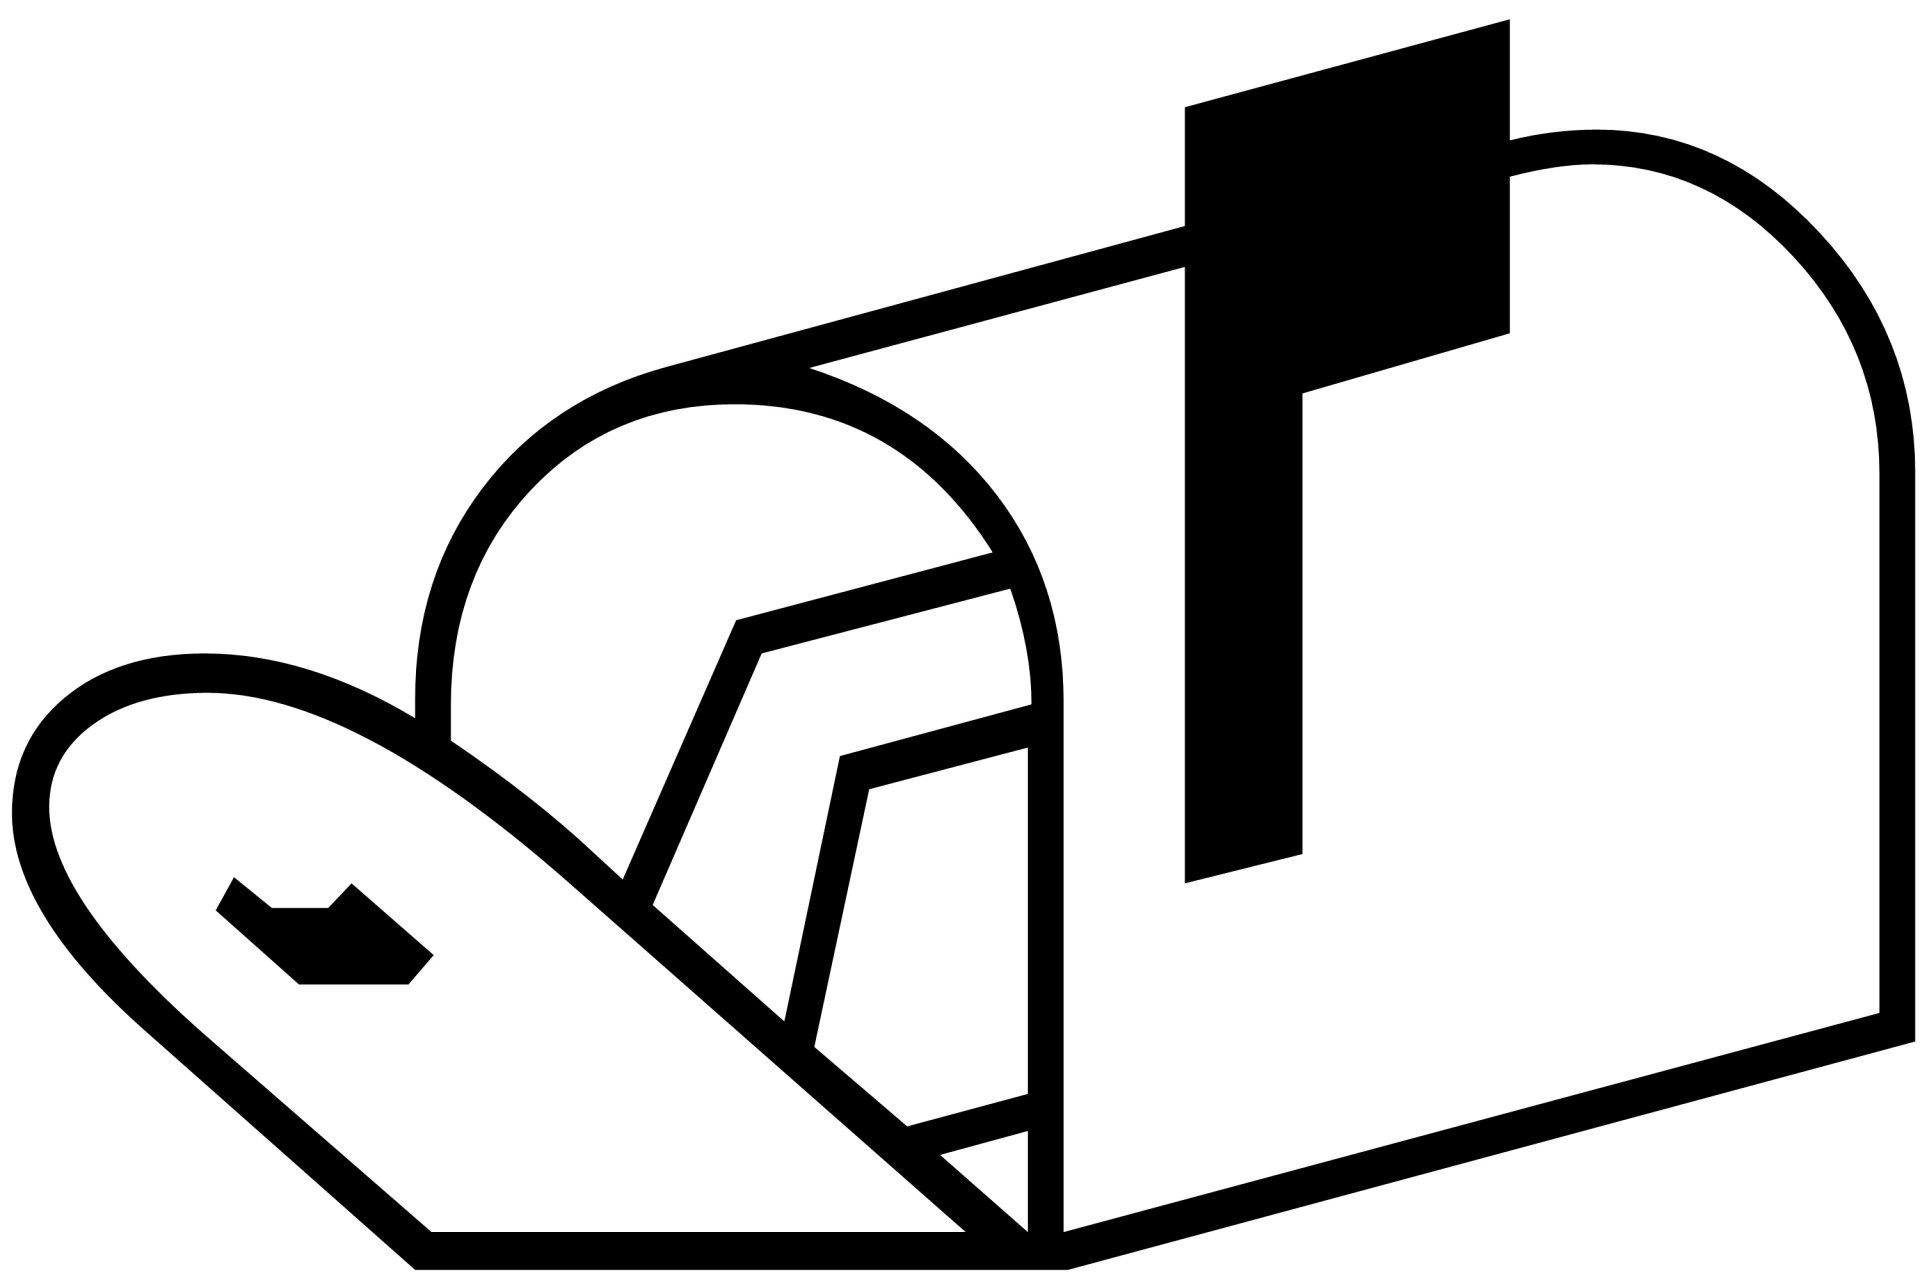 Mailbox clipart black and white. Free download best